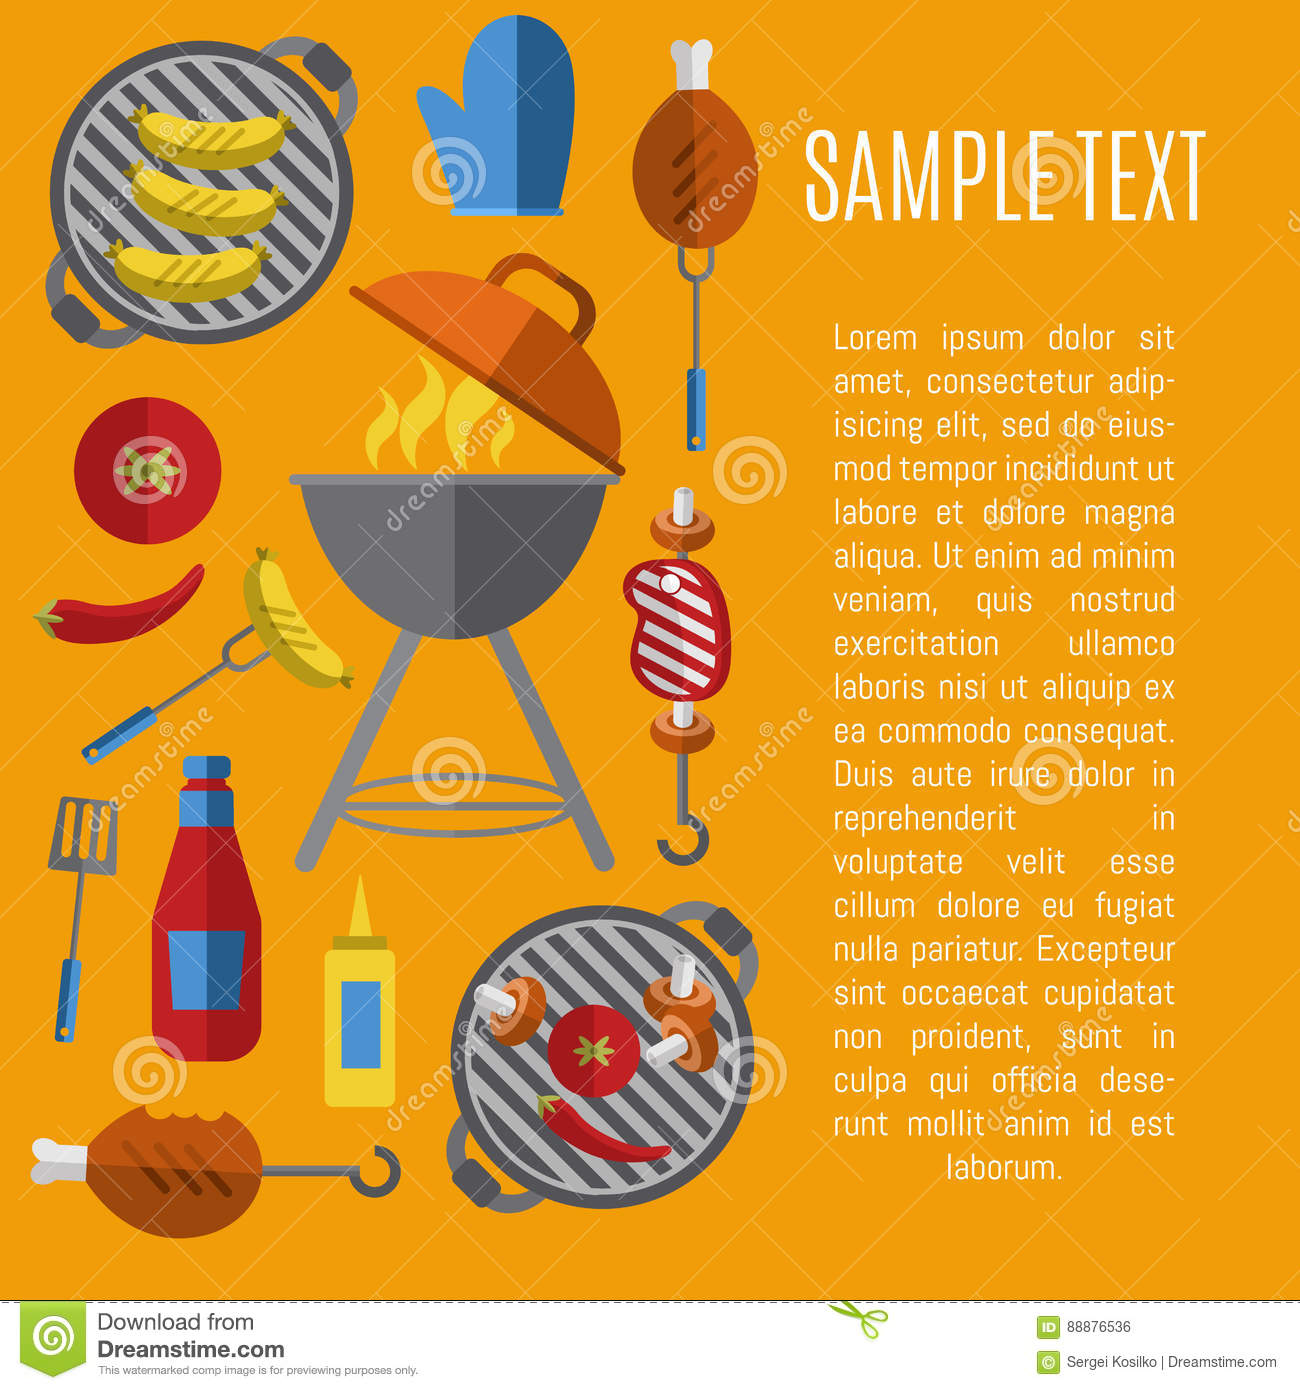 Poster design tools - Barbecue Grill Poster Design Template